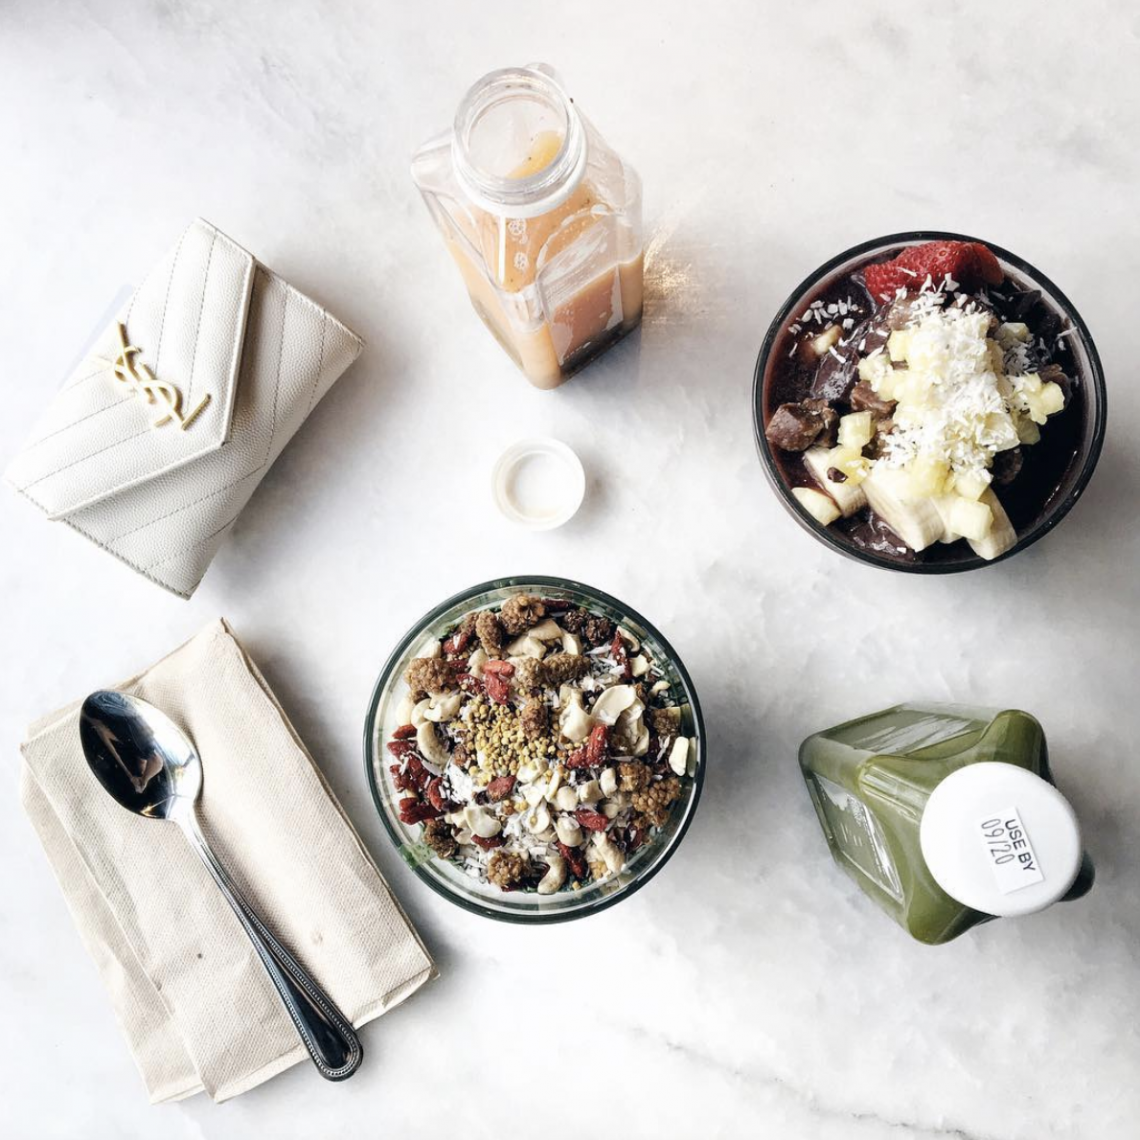 Lunch Delivery: Our Favorite Healthy Options